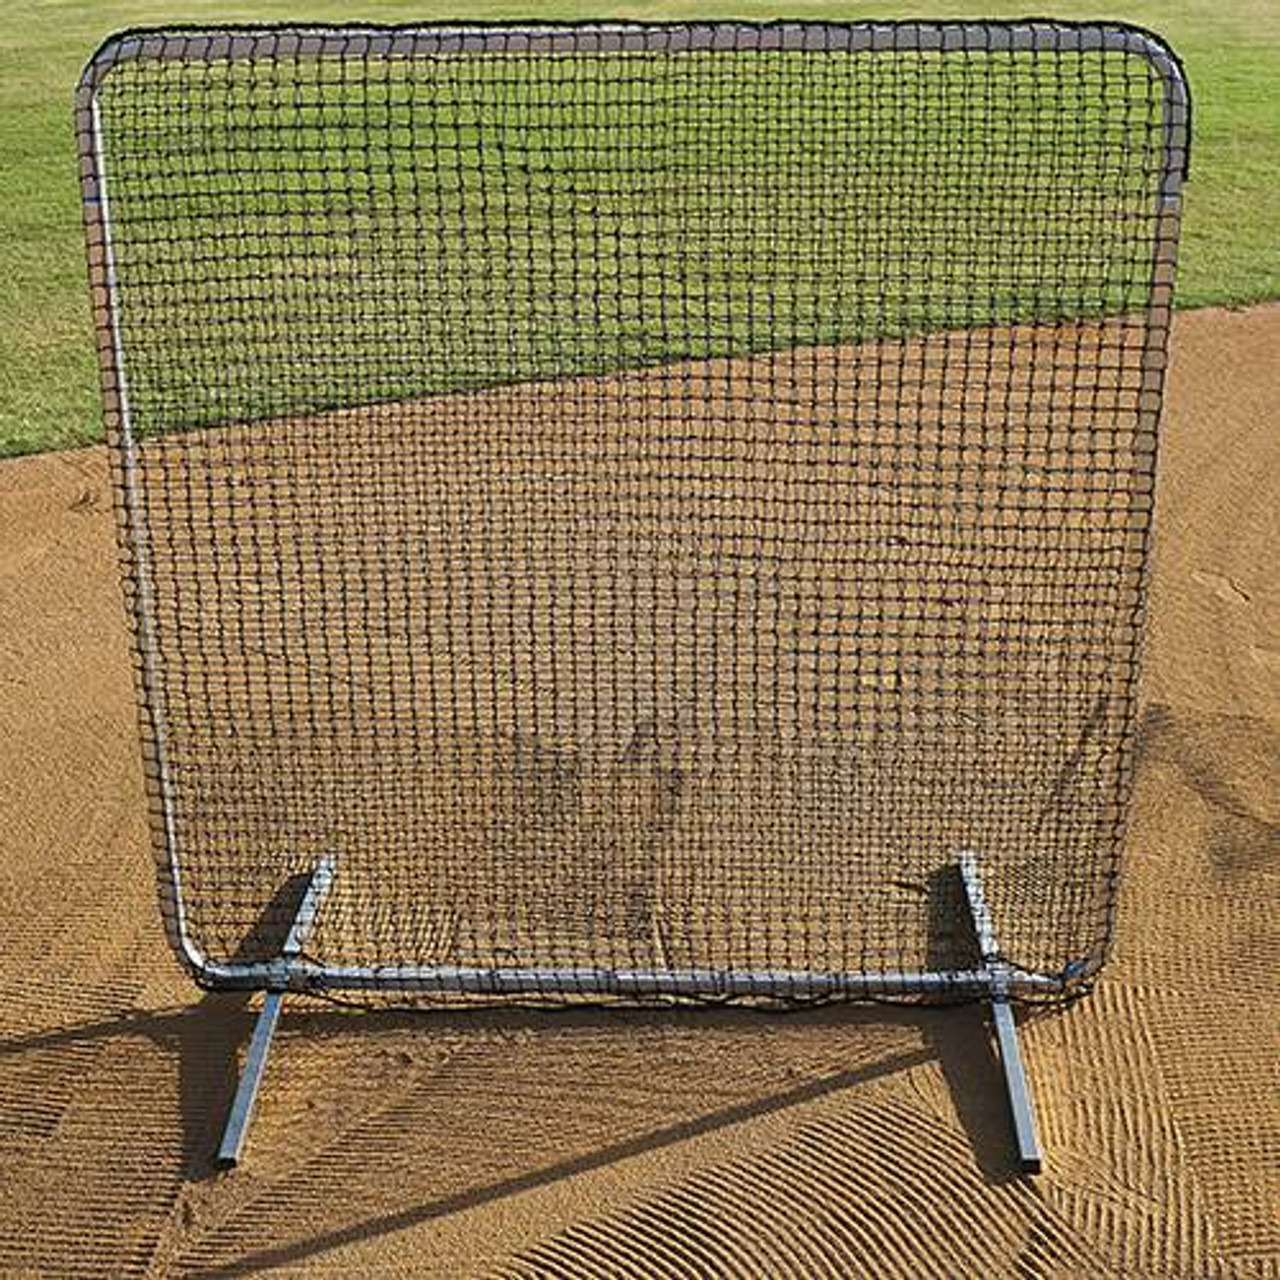 Collegiate First Base Protector